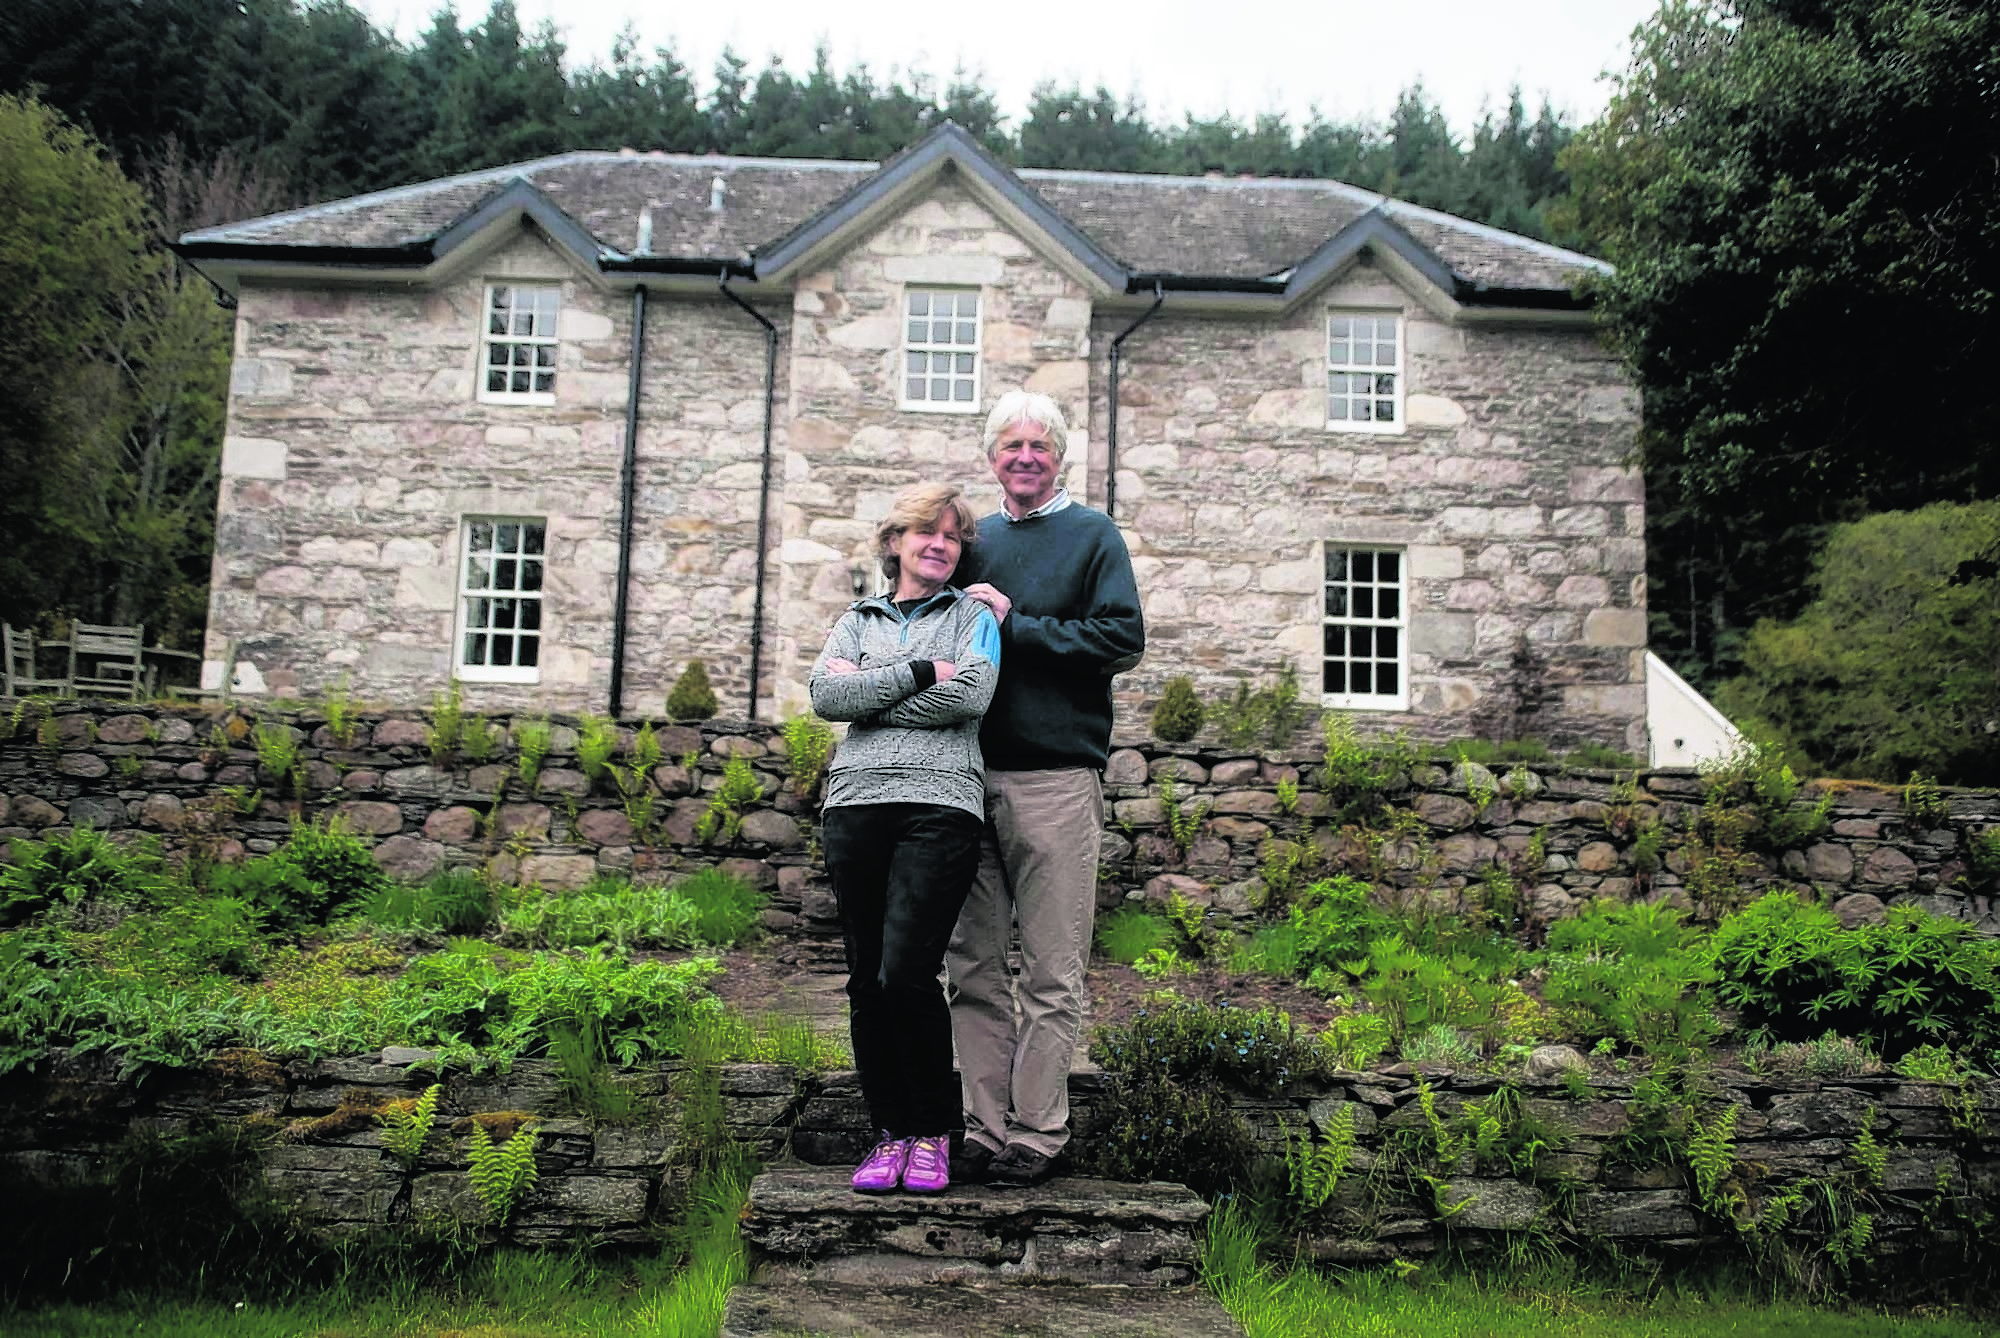 David Anderson  with his wife Bridget and Roly the dog at, Dalvrecht Manse Tomintoul Ballindalloch Moray.